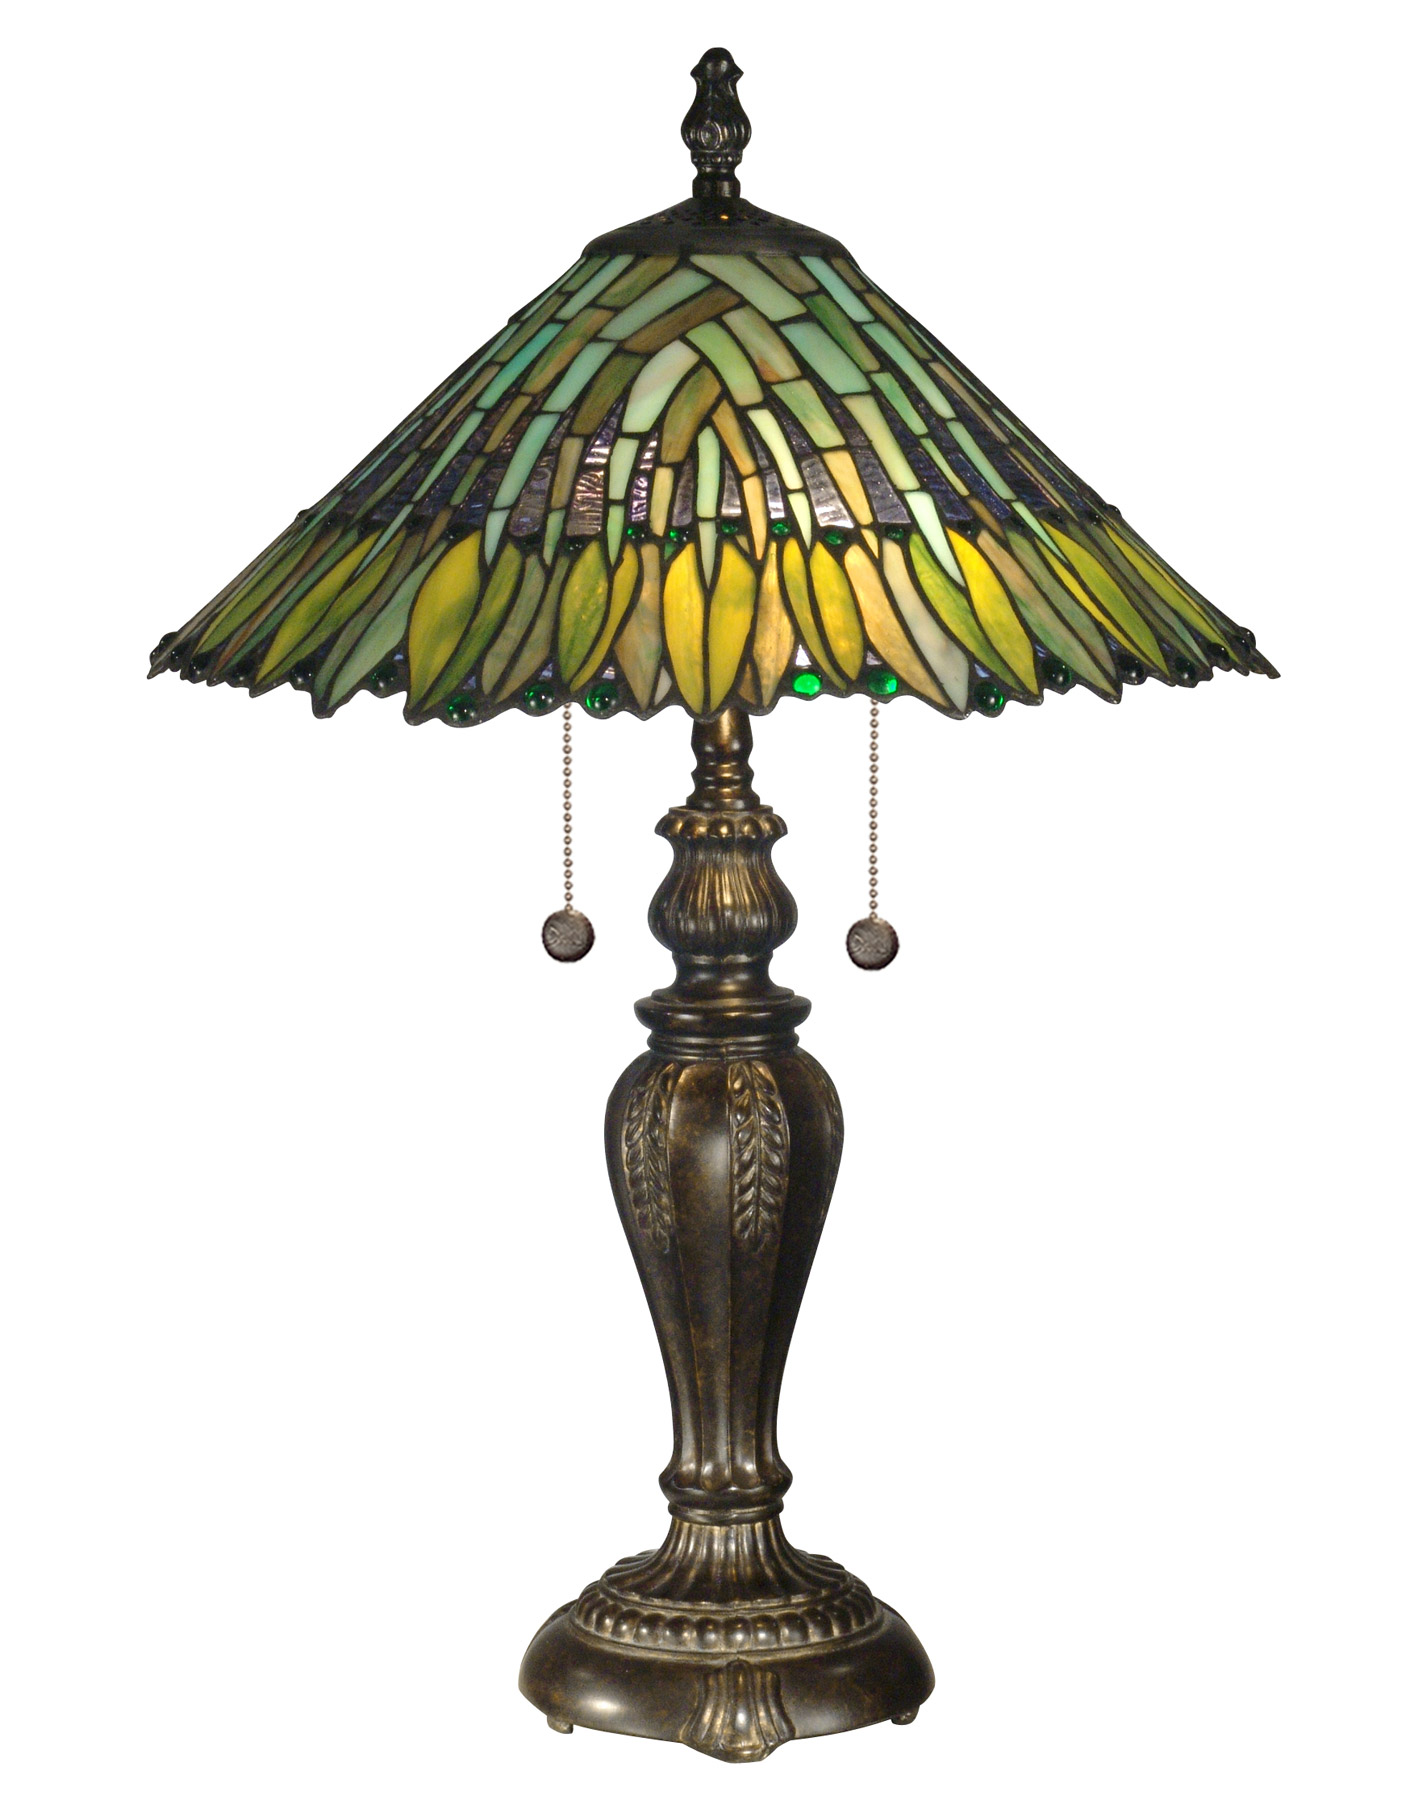 Dale Tiffany TT100914 Tiffany Leavesley Table Lamp